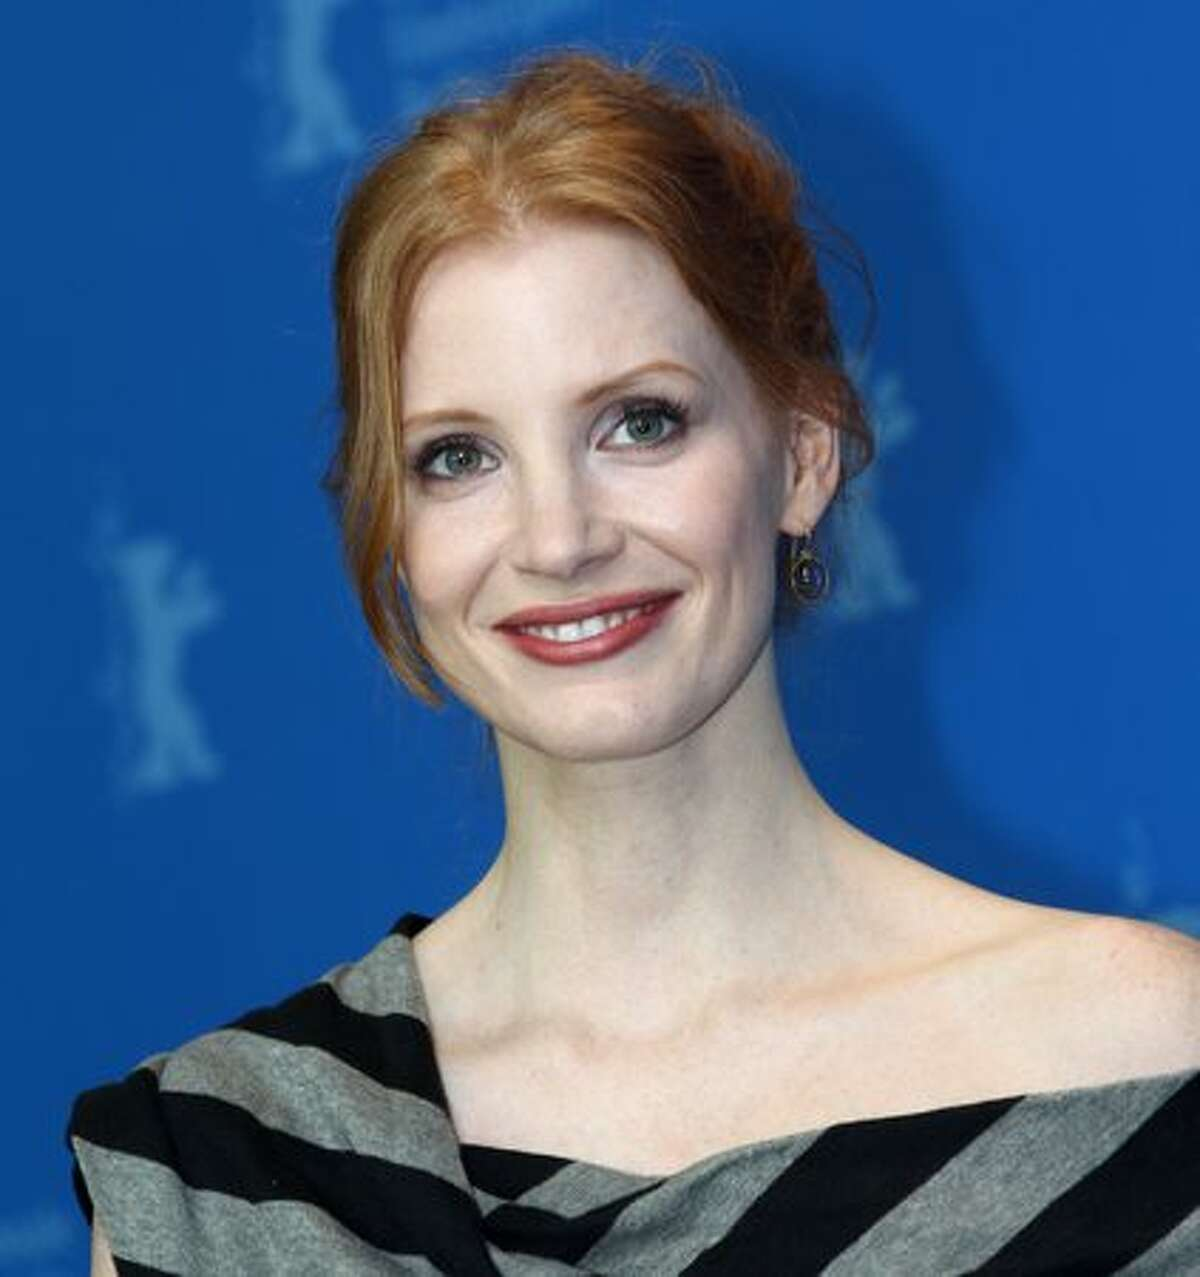 Actress Jessica Chastain poses for photographers during a photocall for the movie